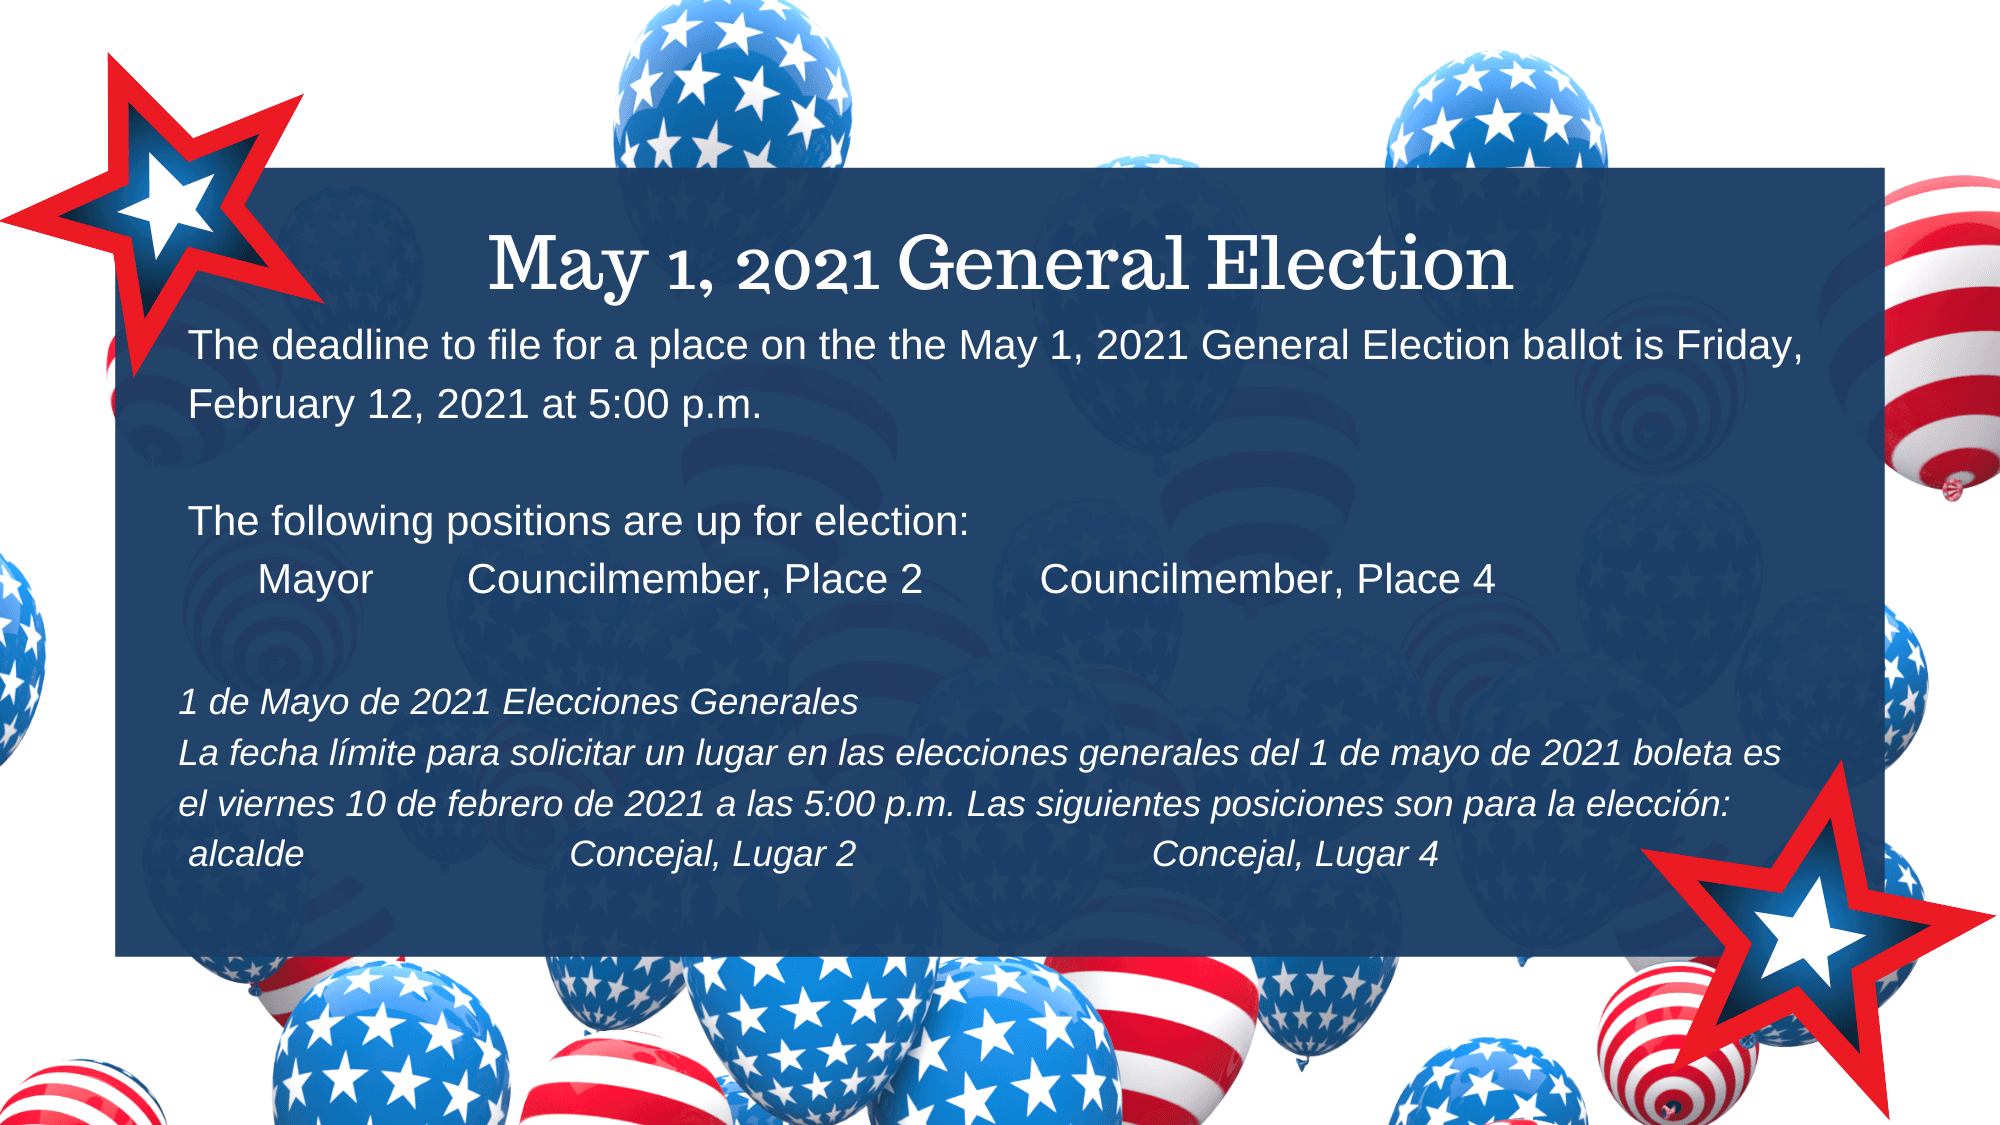 Graphic May 1, 2021 General Election